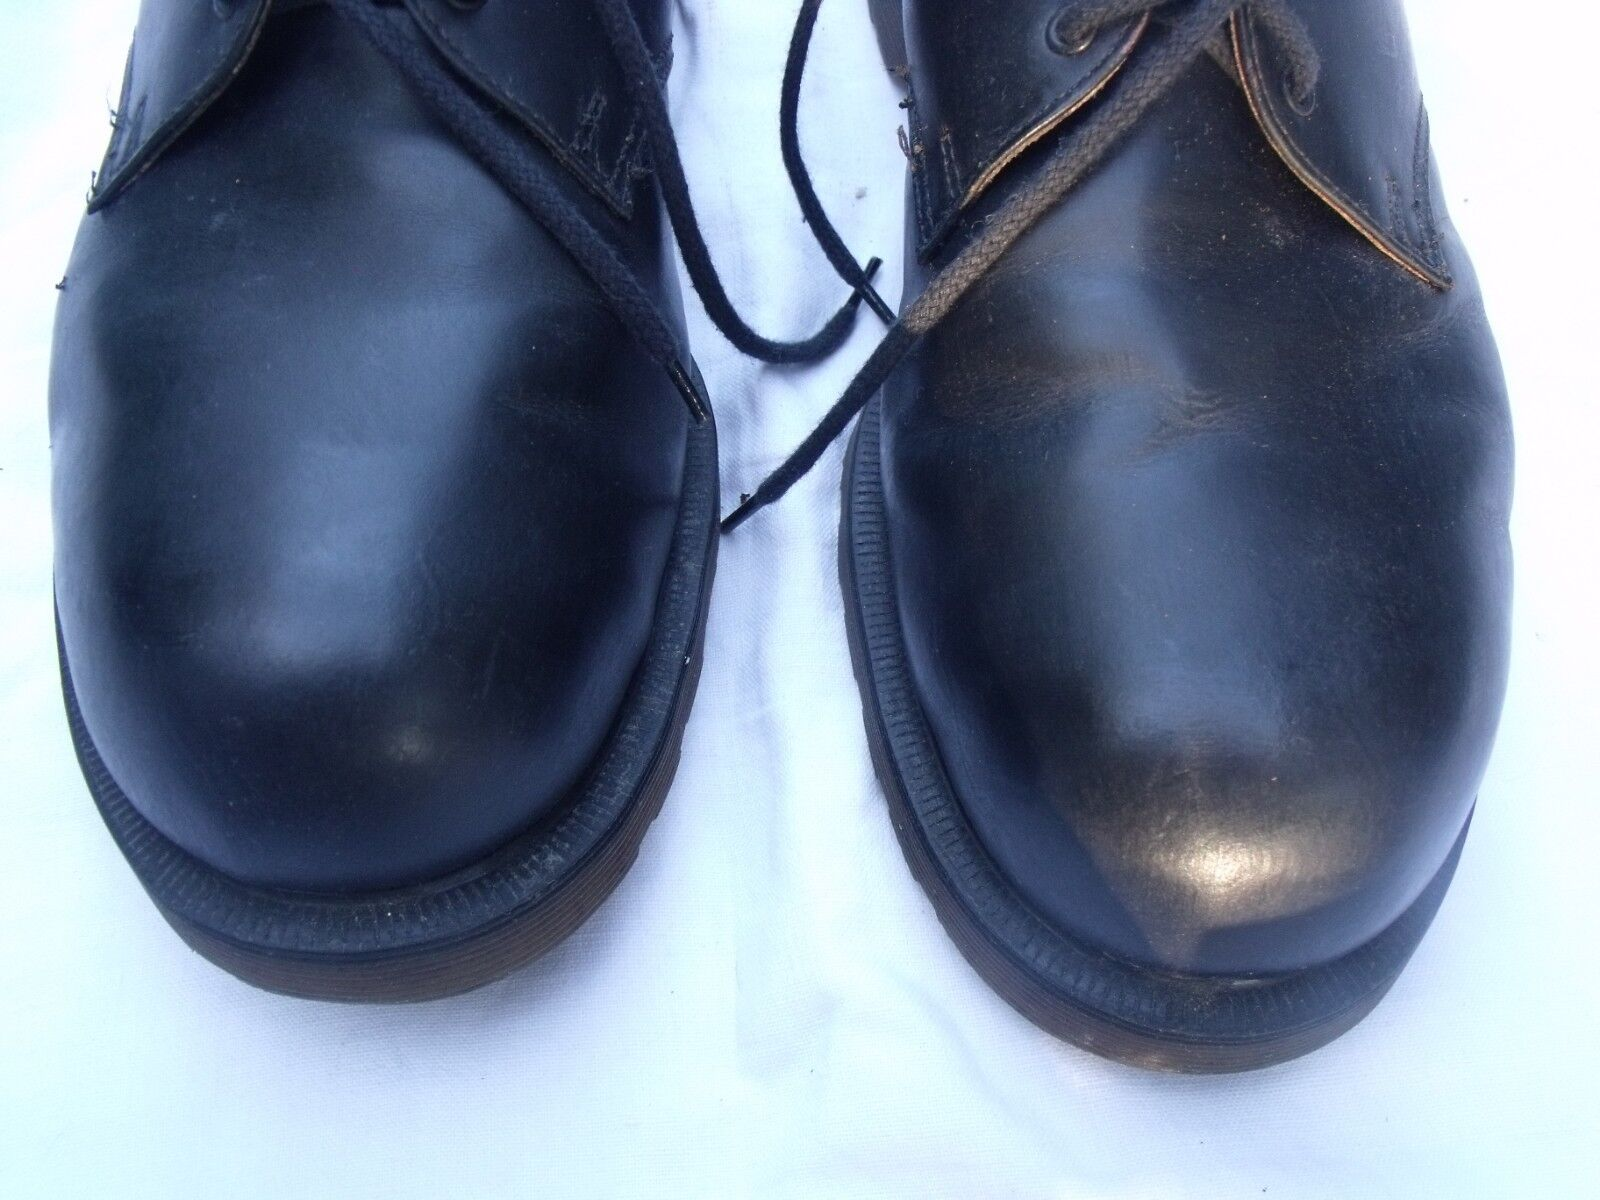 Chaussures doc martens 1925 size 11 made in england